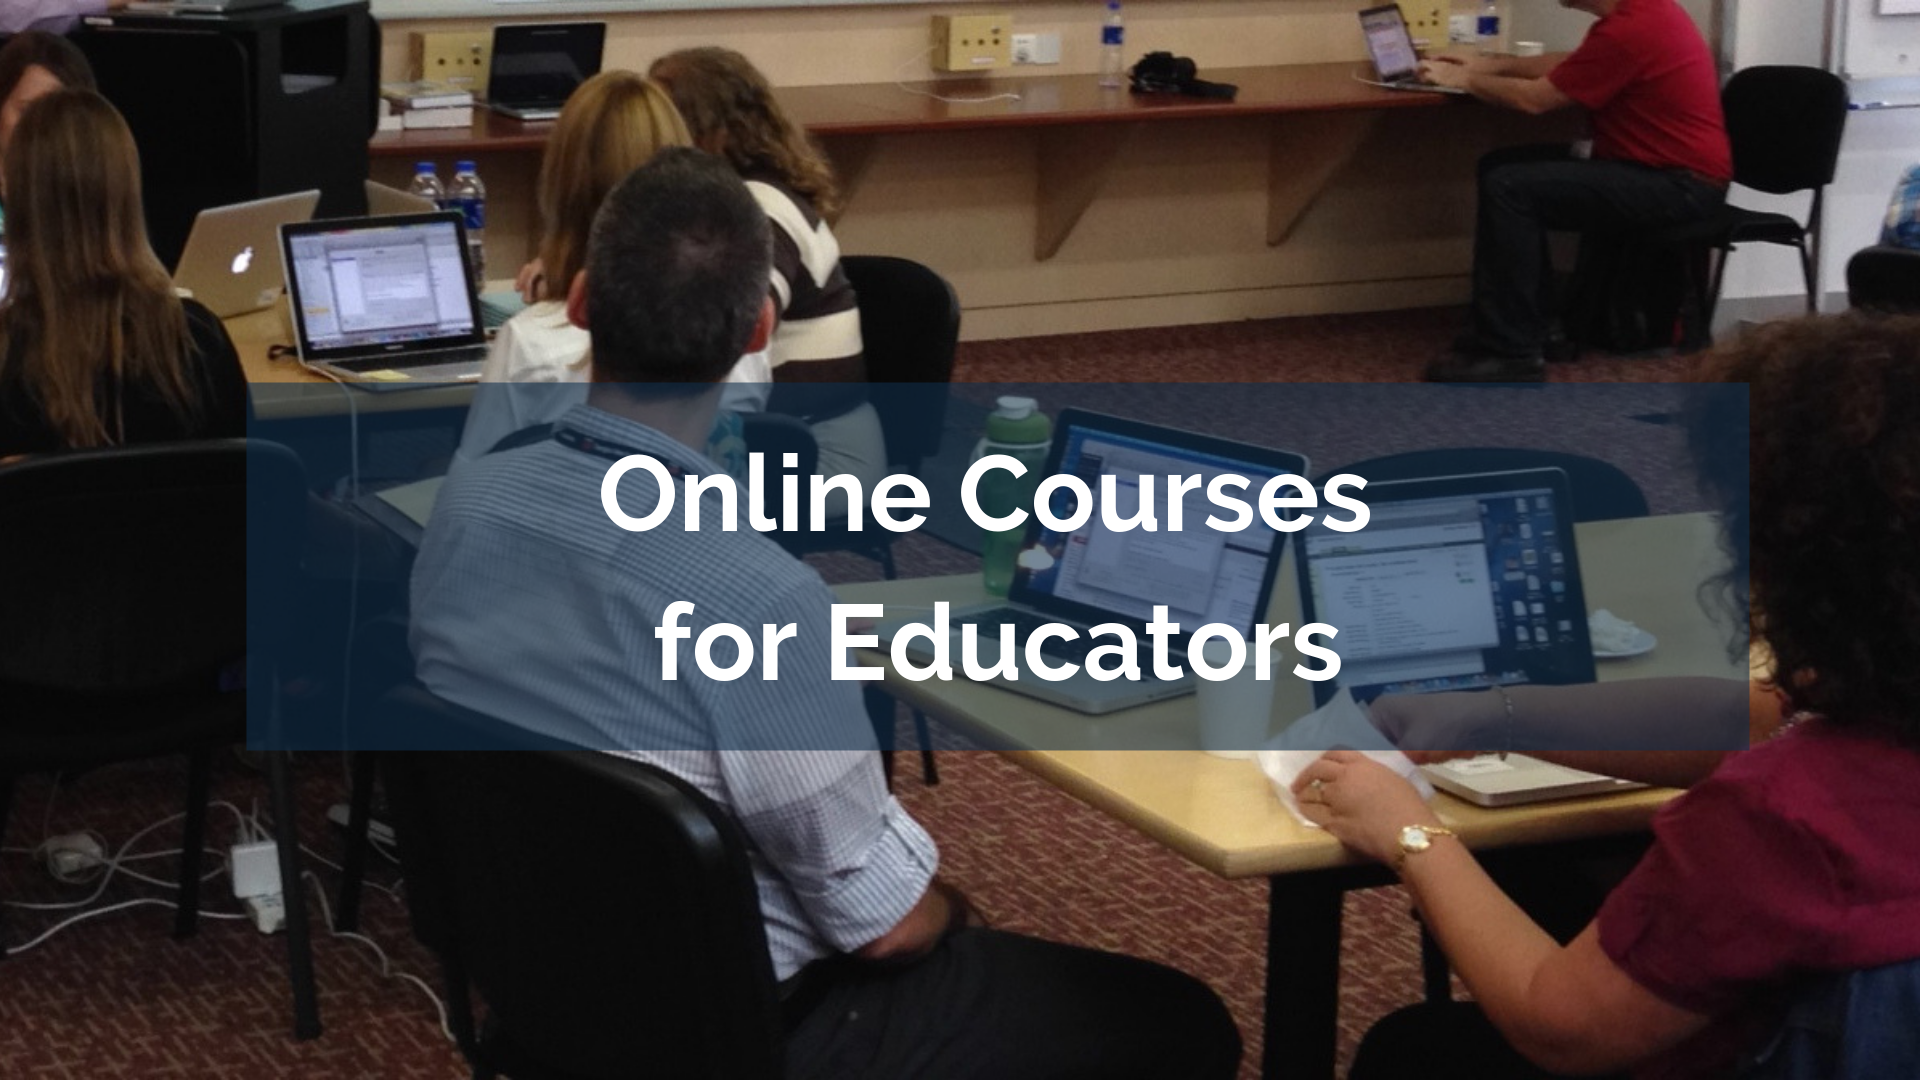 Online Courses for Educators